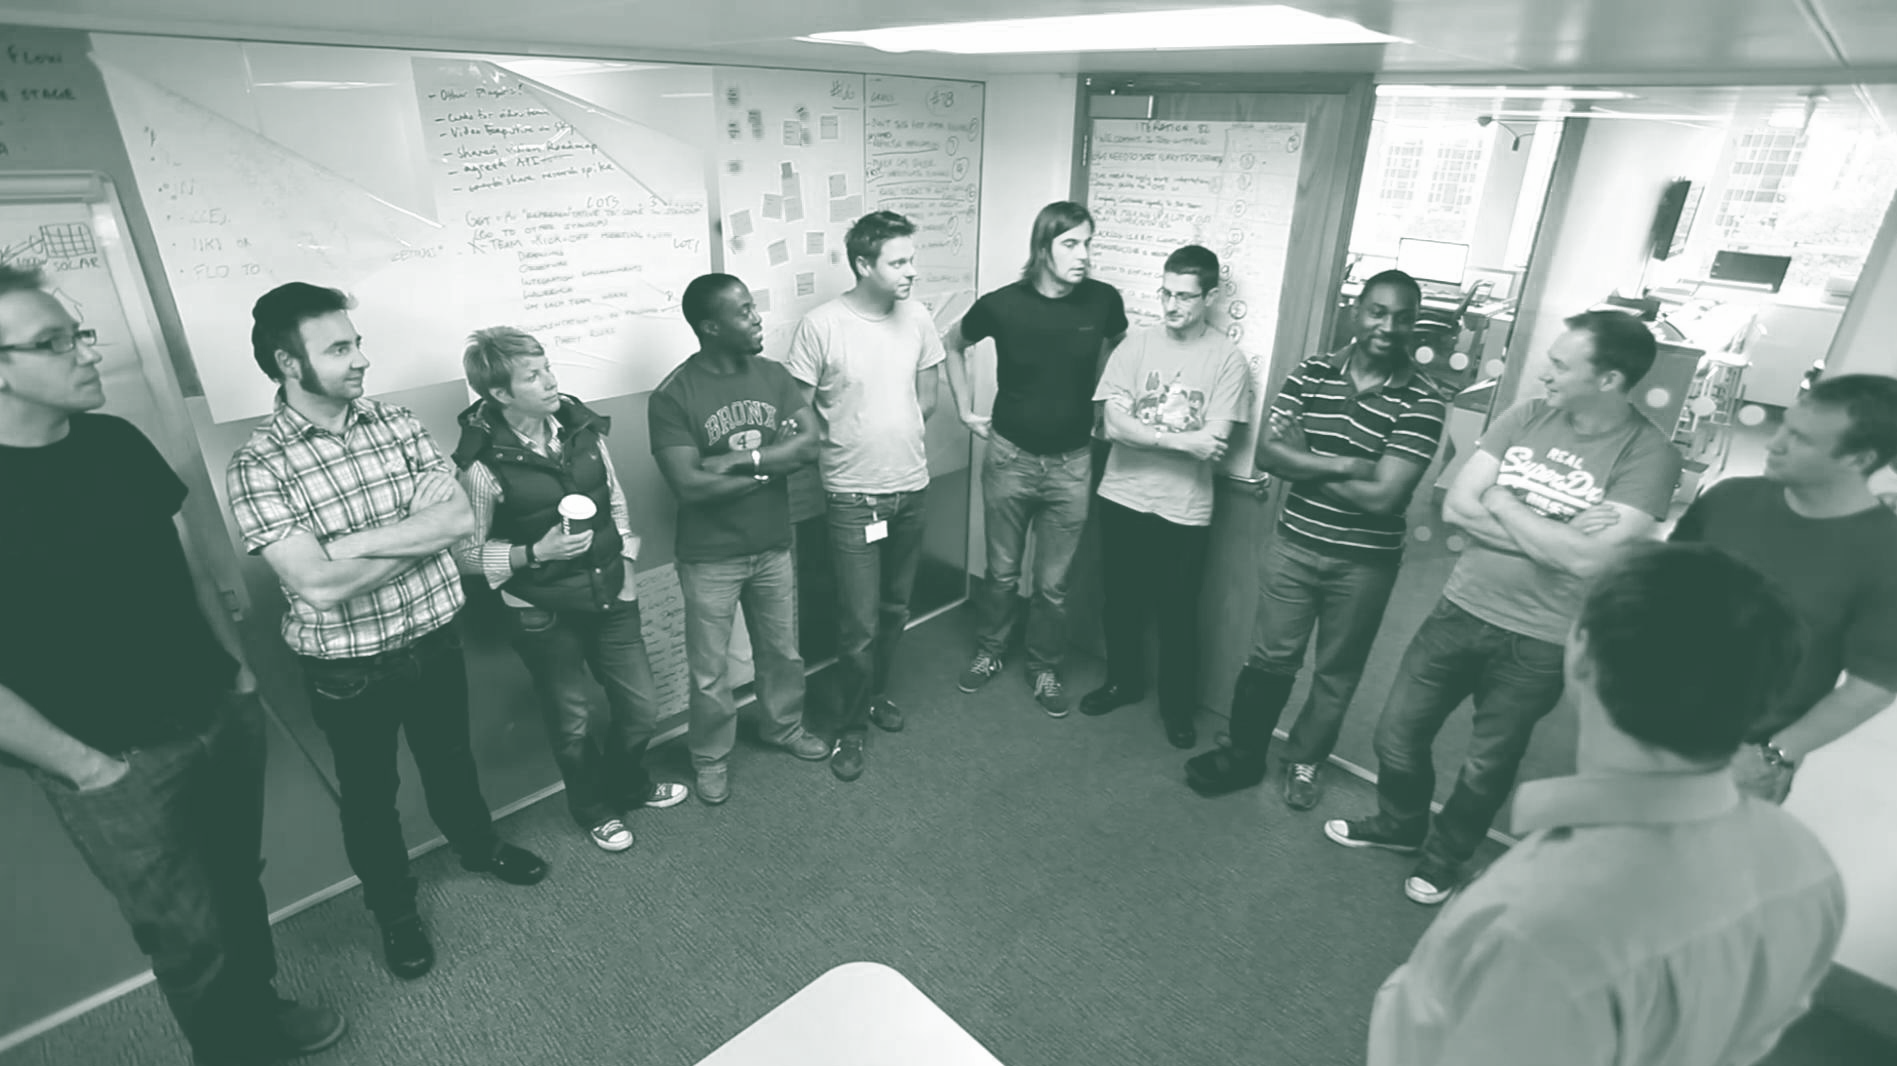 Daily scrum stand-up